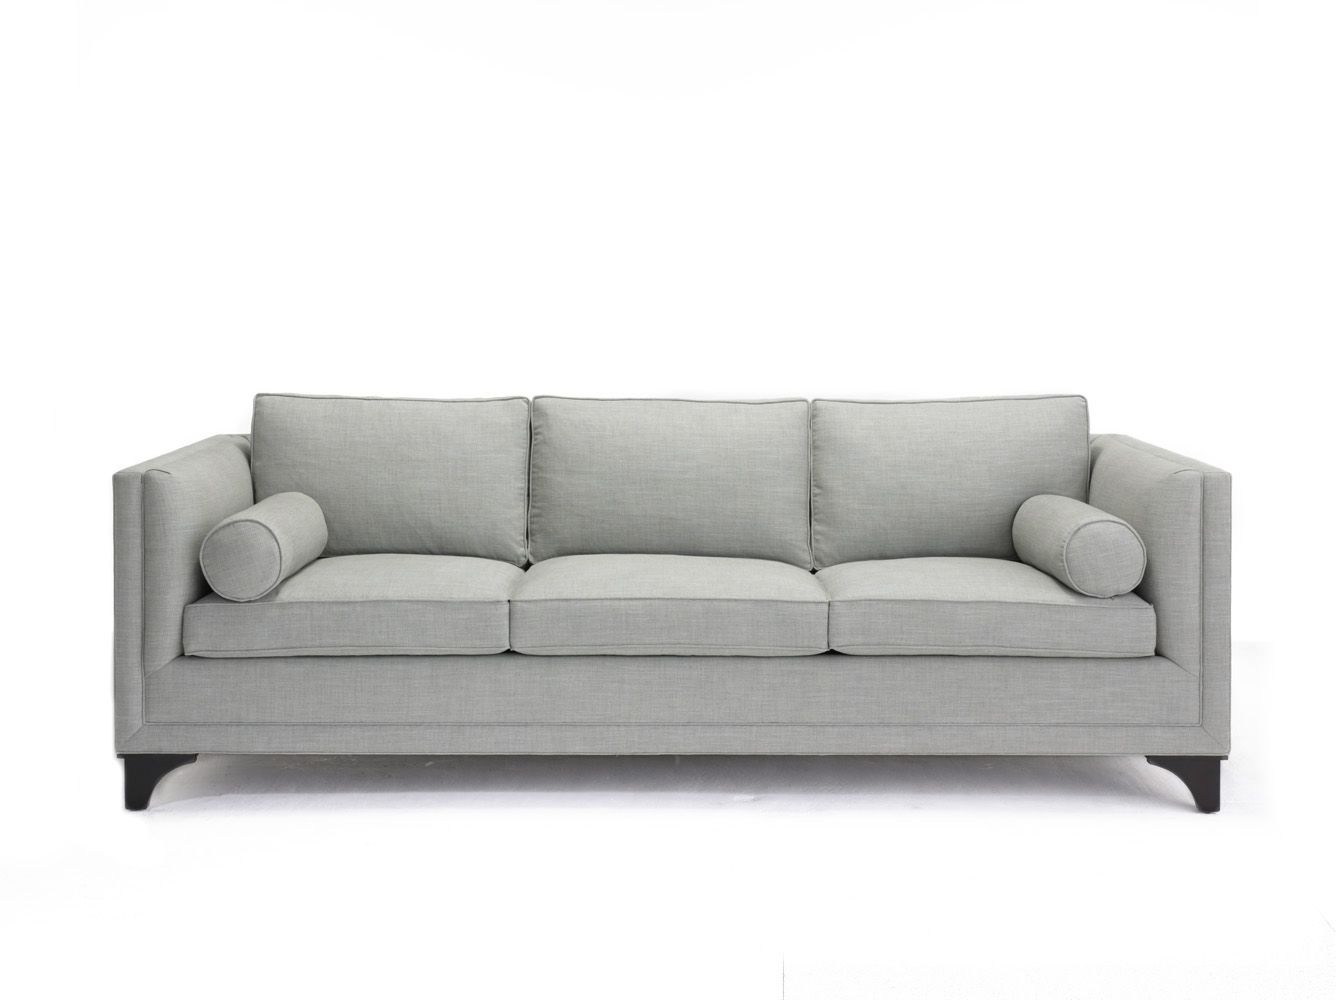 Downing Sofa By Kate Spade The Art Shoppe Luxury Furniture Store Toronto Luxury Furniture Stores Sofa Luxury Furniture